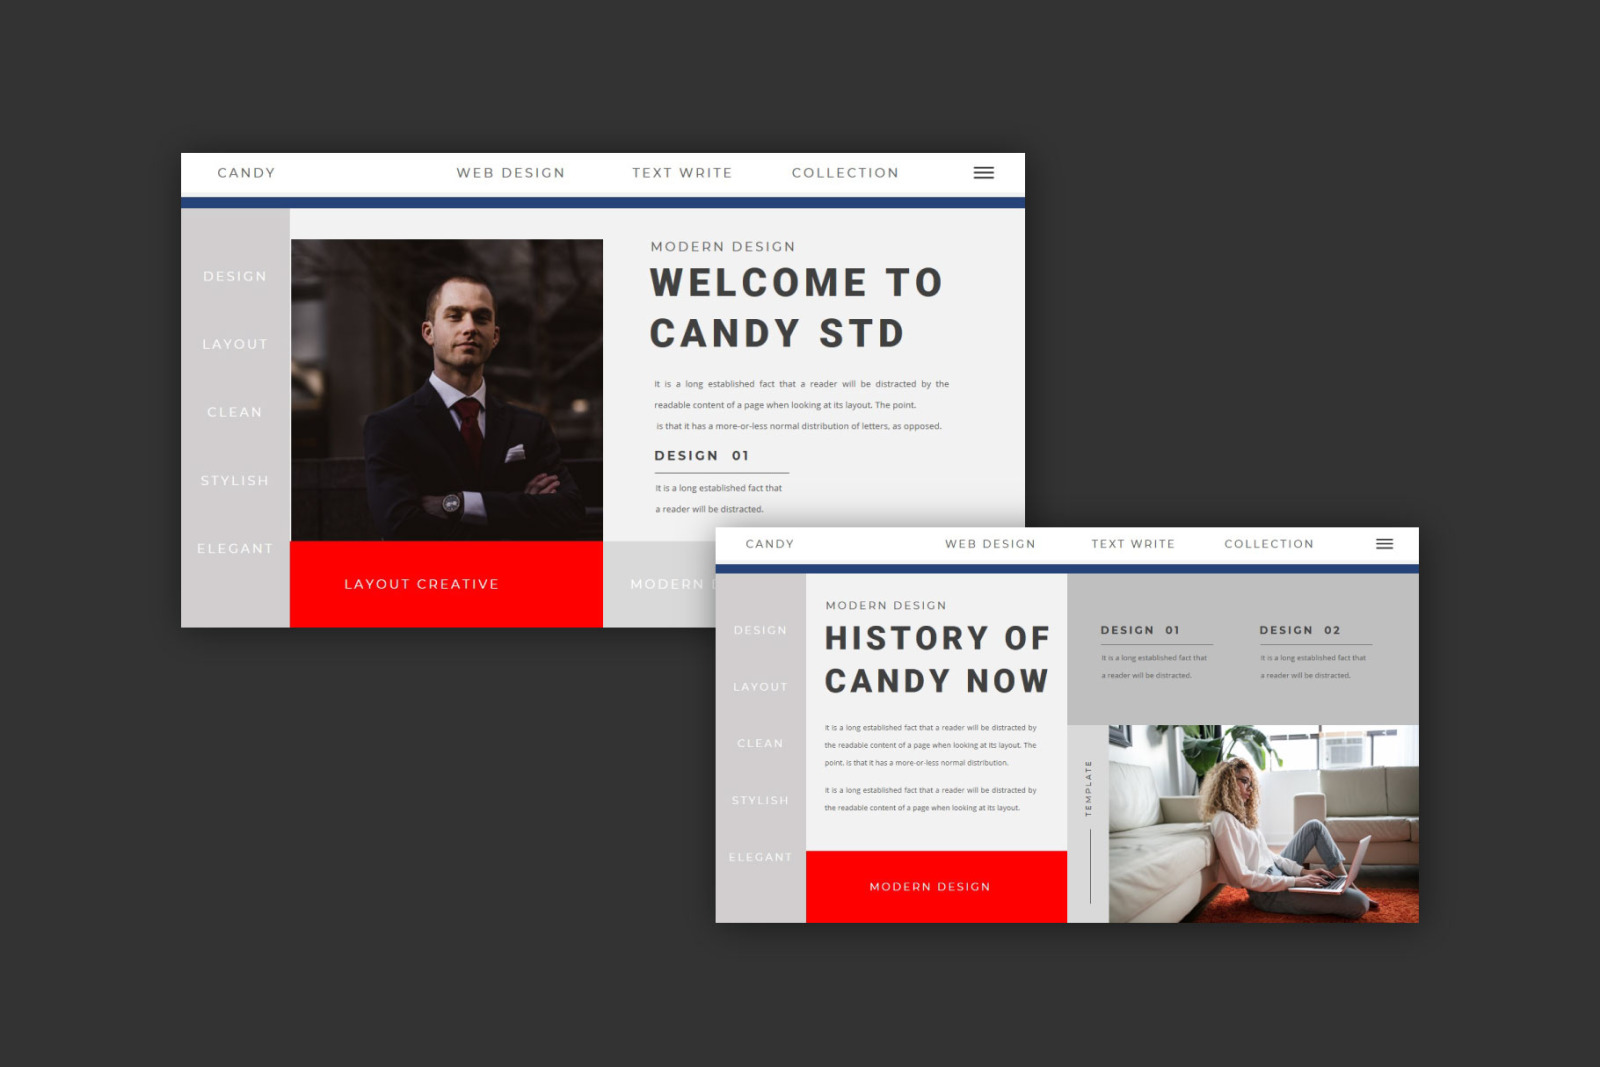 CANDY Google Slides